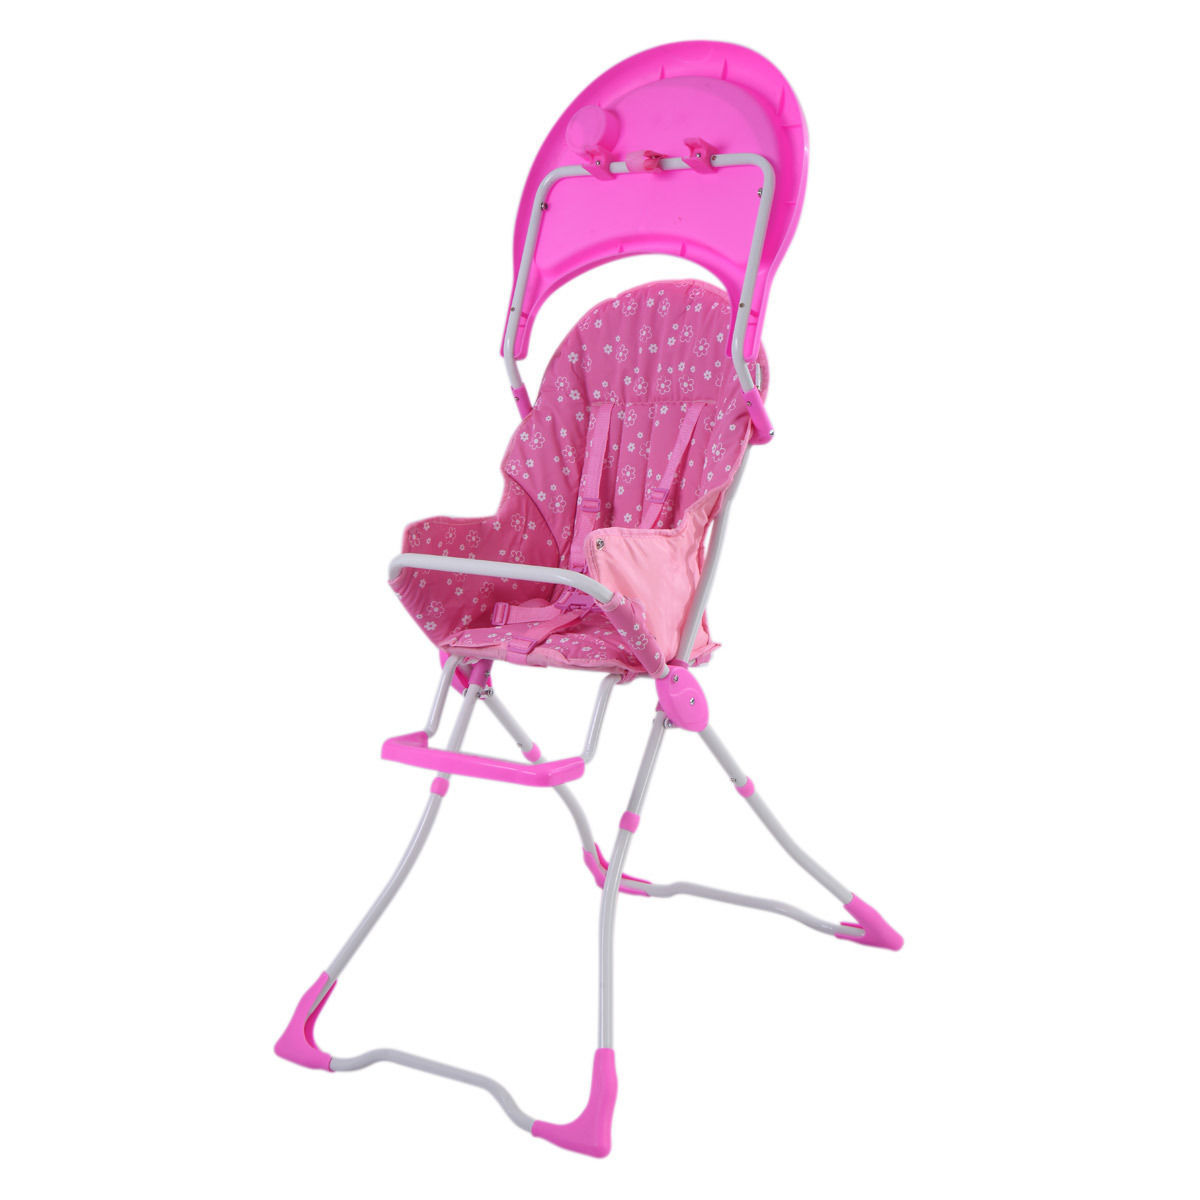 GHP 33-Lbs Capacity Pink Portable Folding Feeding Booster Infant Seat Baby High Chair